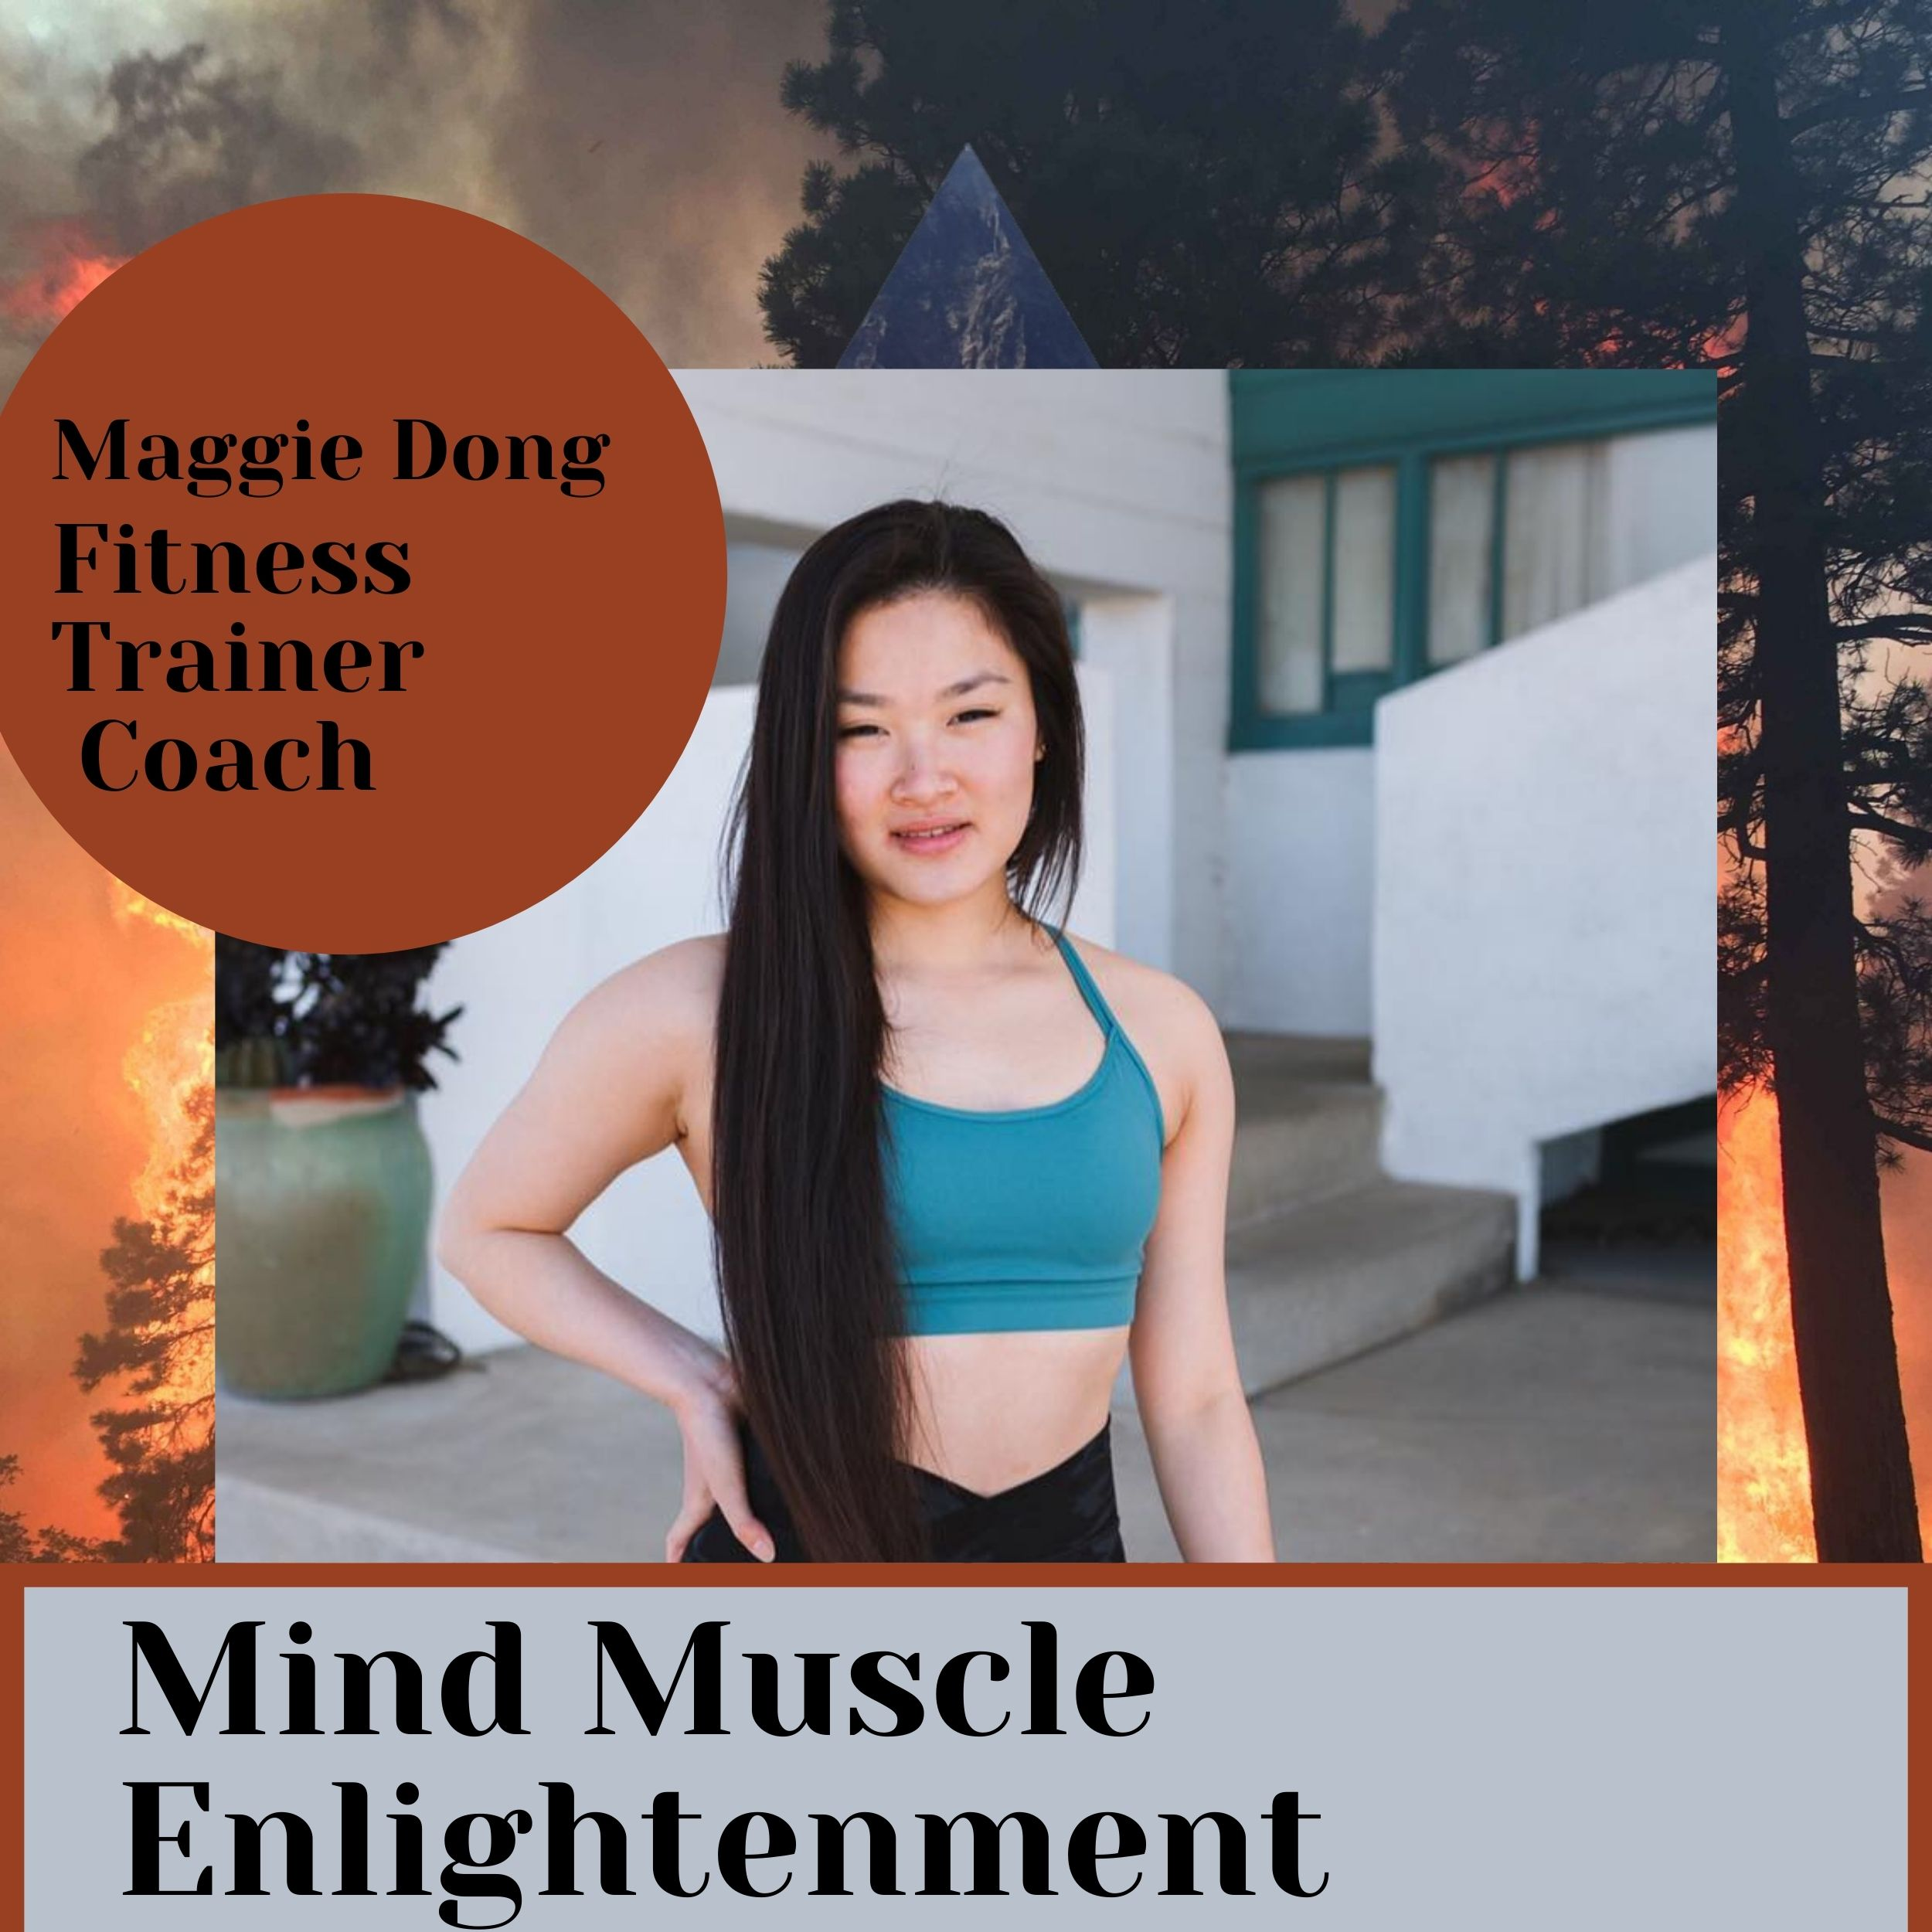 Maggie Dong: Fitness is More than Physical